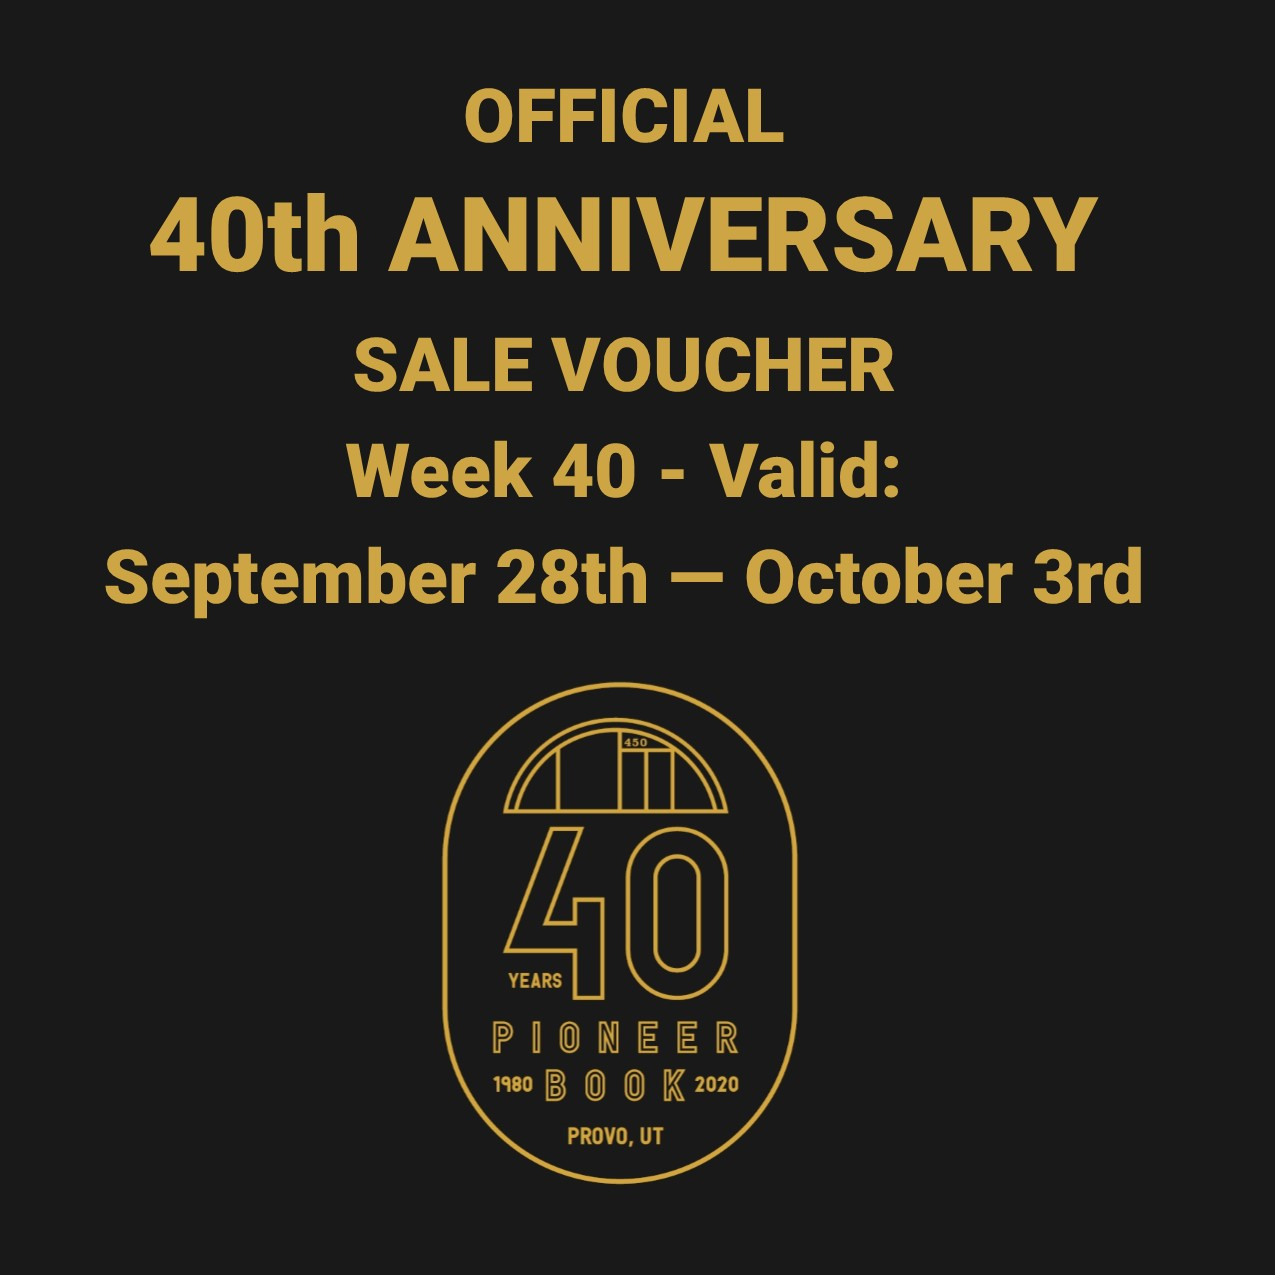 Image for 40th Anniversary Sale! Voucher - Week 40: September 28th - October 3rd